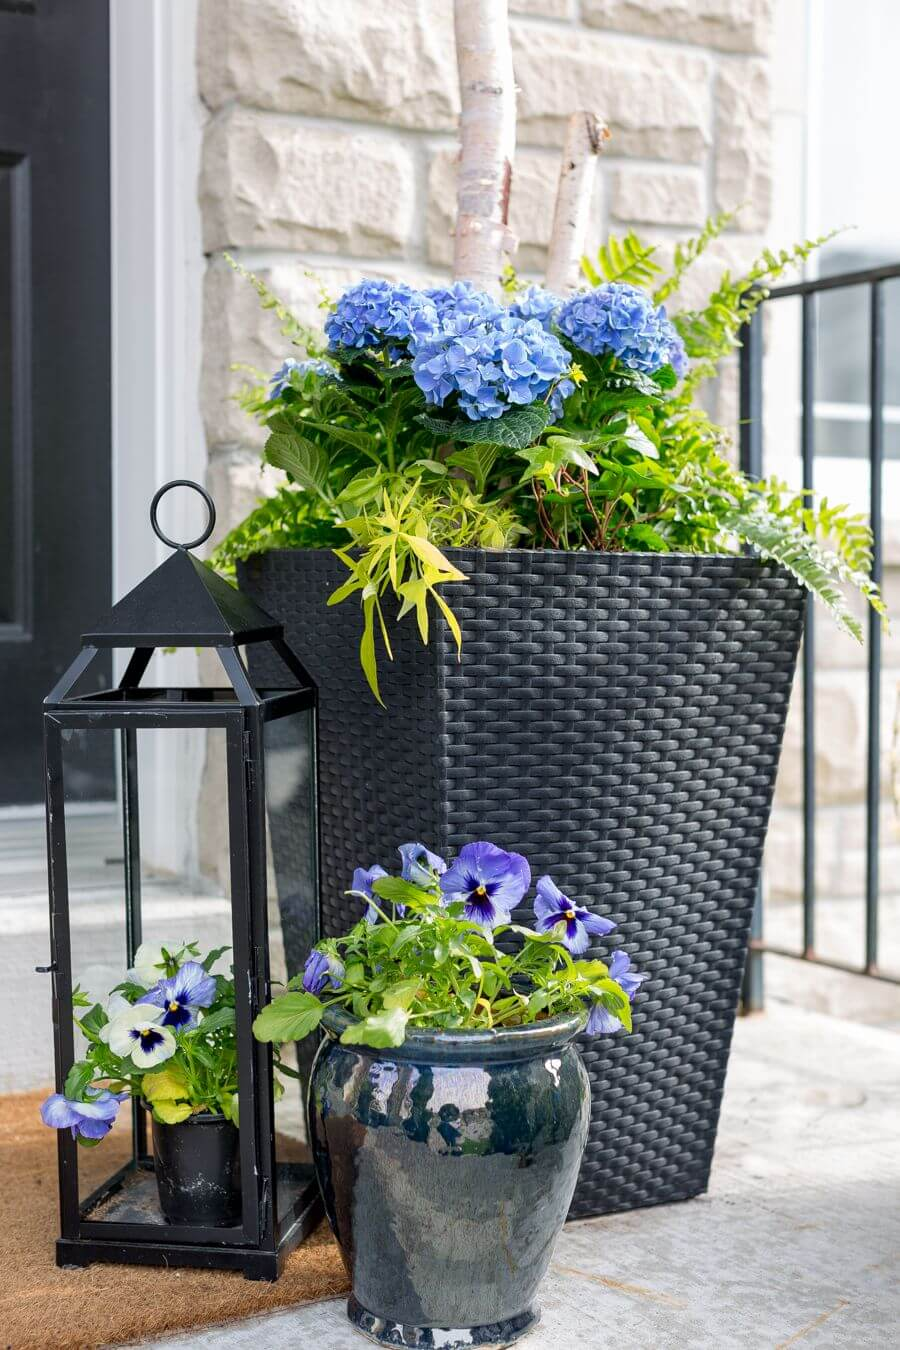 Hydrangeas in a Hamper with Pansies